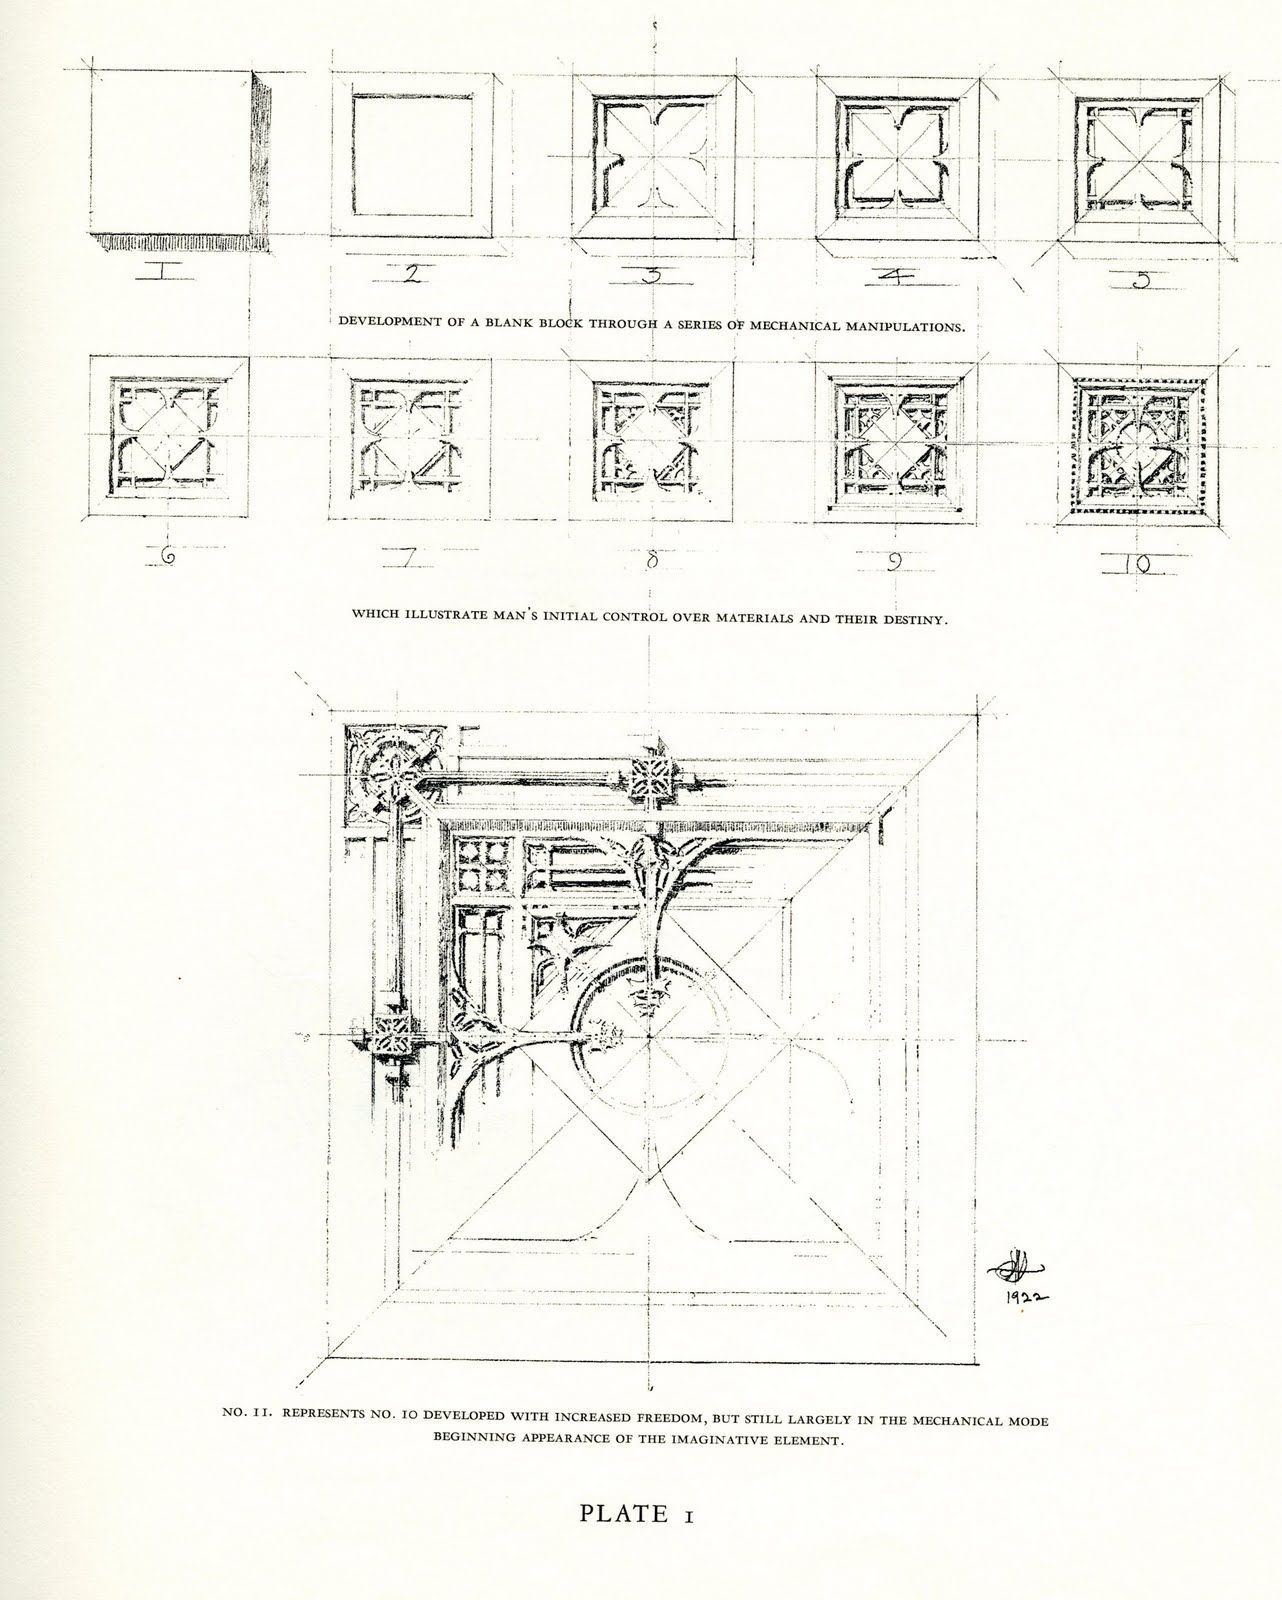 Love Drawing And Design Finding A Career In Architecture Drawing On Demand Louis Sullivan Architecture Drawing Chicago Architecture